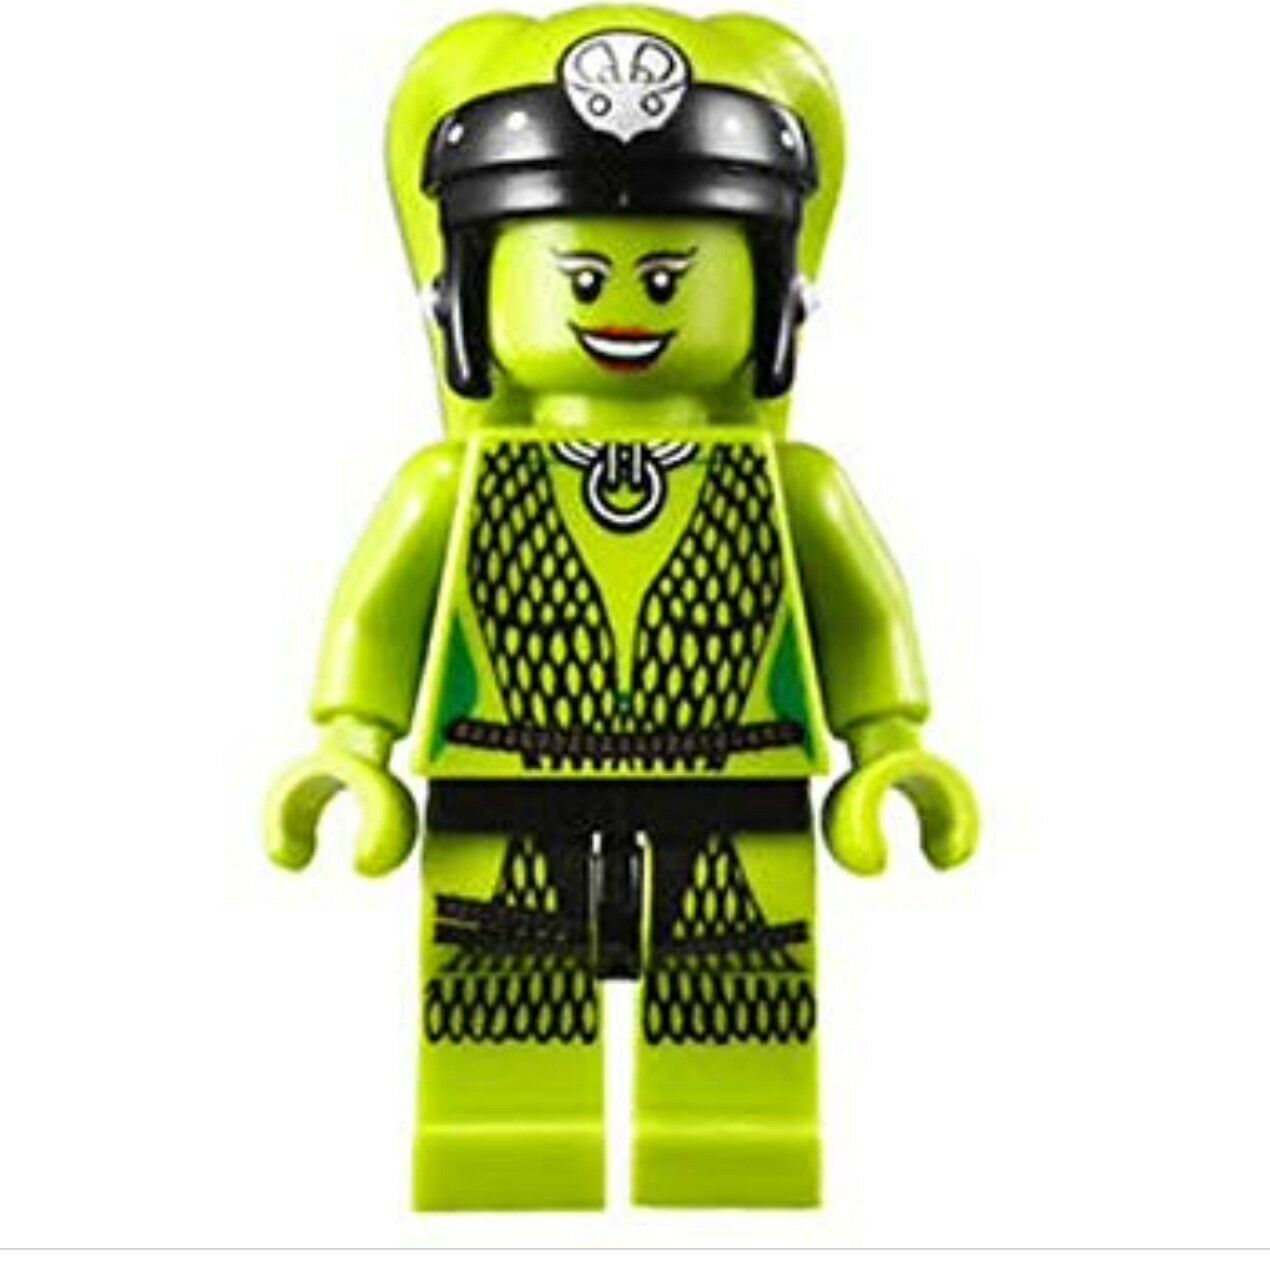 Star Wars minifigure OOLA split from set 9516 now retiROT